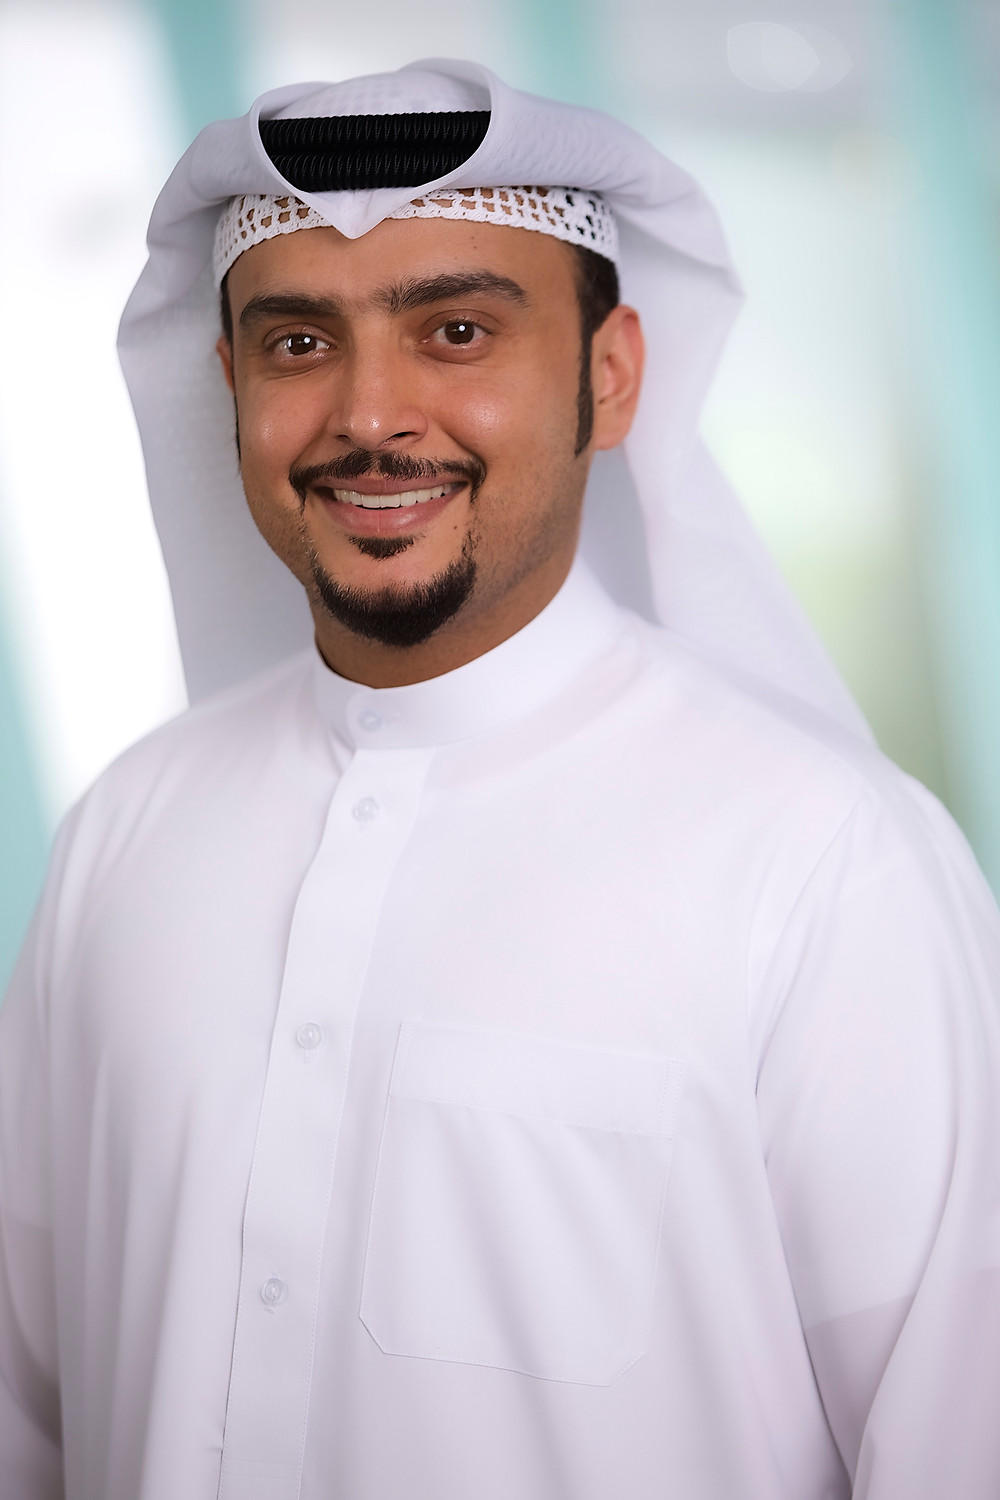 Sulaiman Al-Ali, Deputy Chief Executive Officer of Thuraya